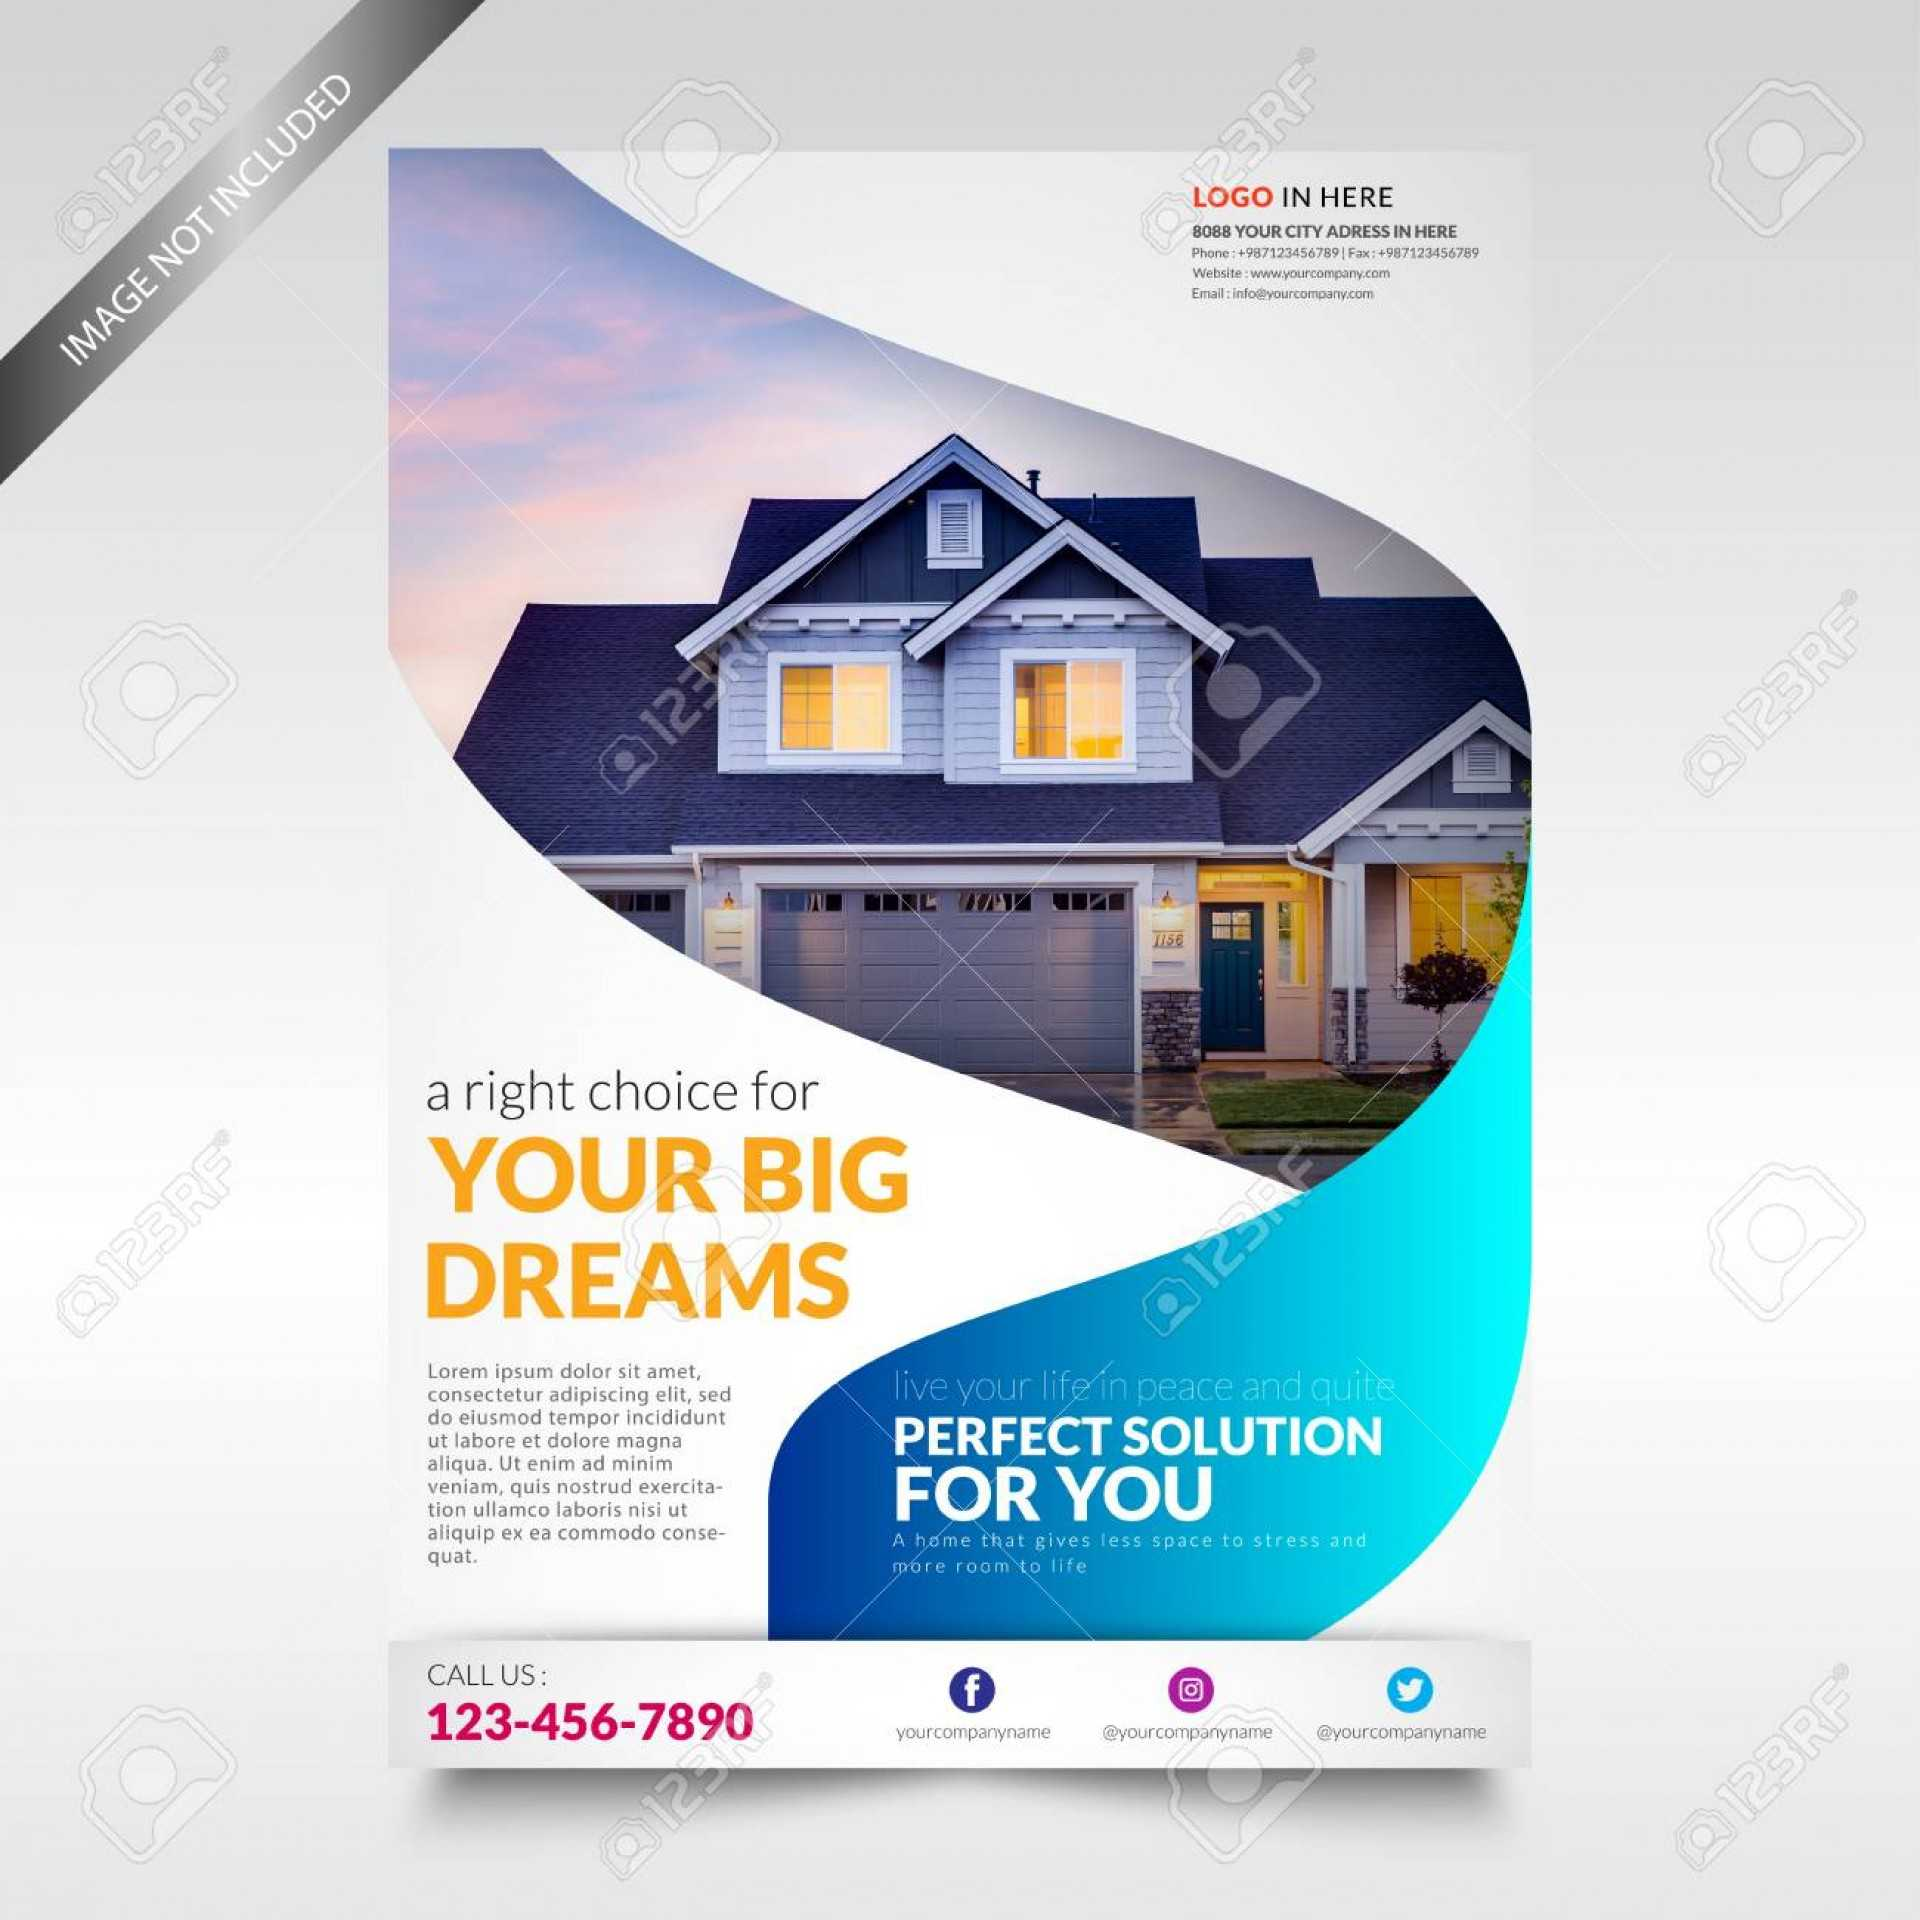 025 Word Image Free Real Estate Flyer Templates For Sale Inside For Sale By Owner Flyer Template